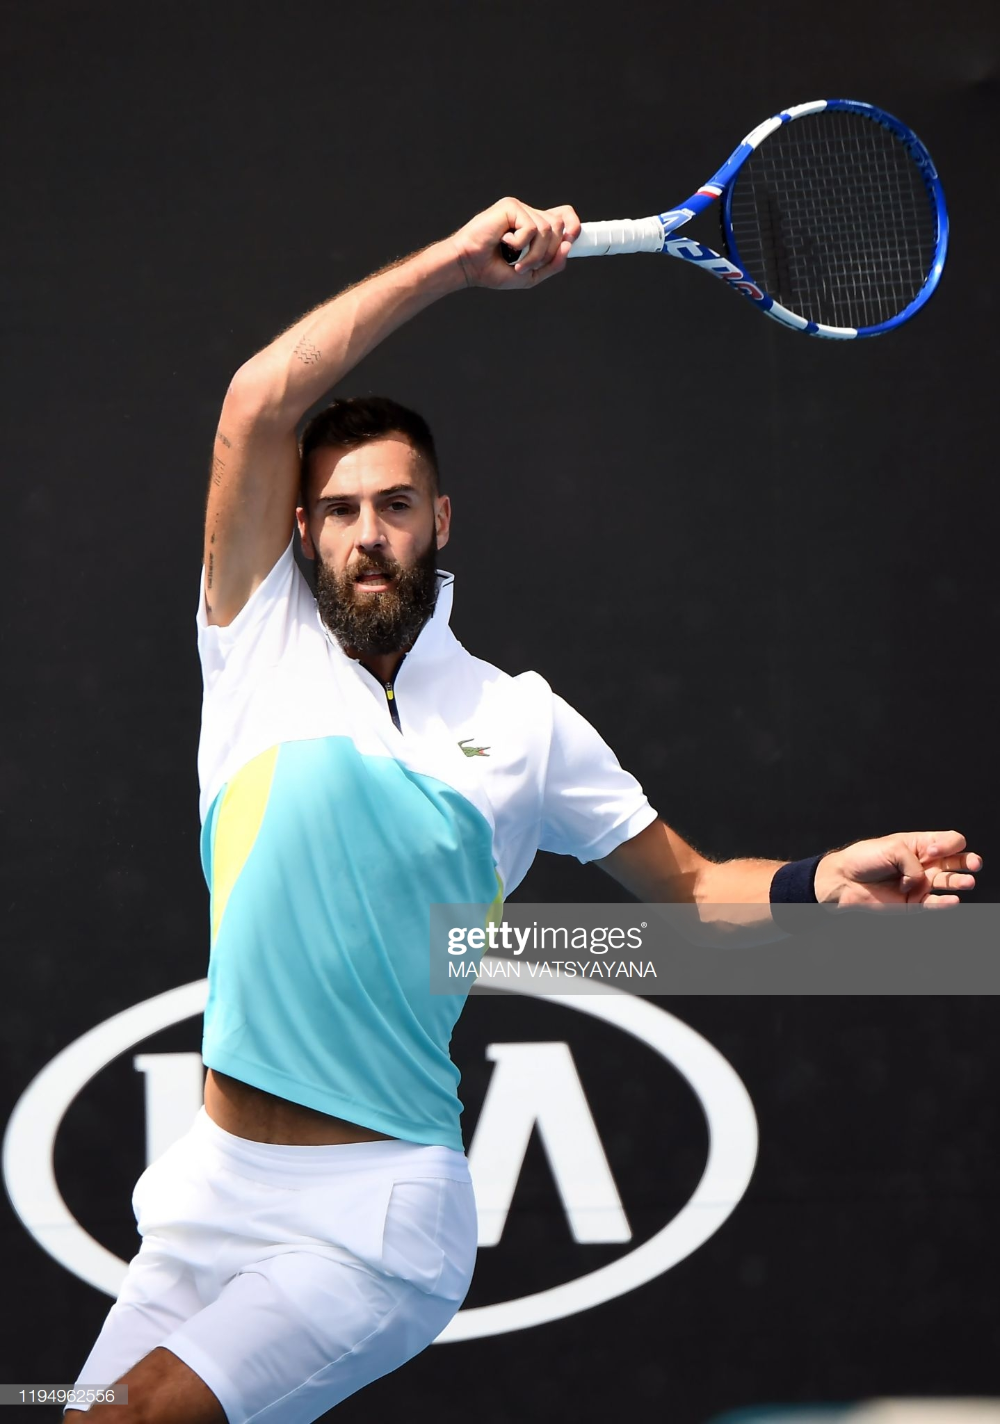 France S Benoit Paire Hits A Return Against Germany S Cedrik Marcel In 2020 Australian Open Tennis Benoit Australian Open